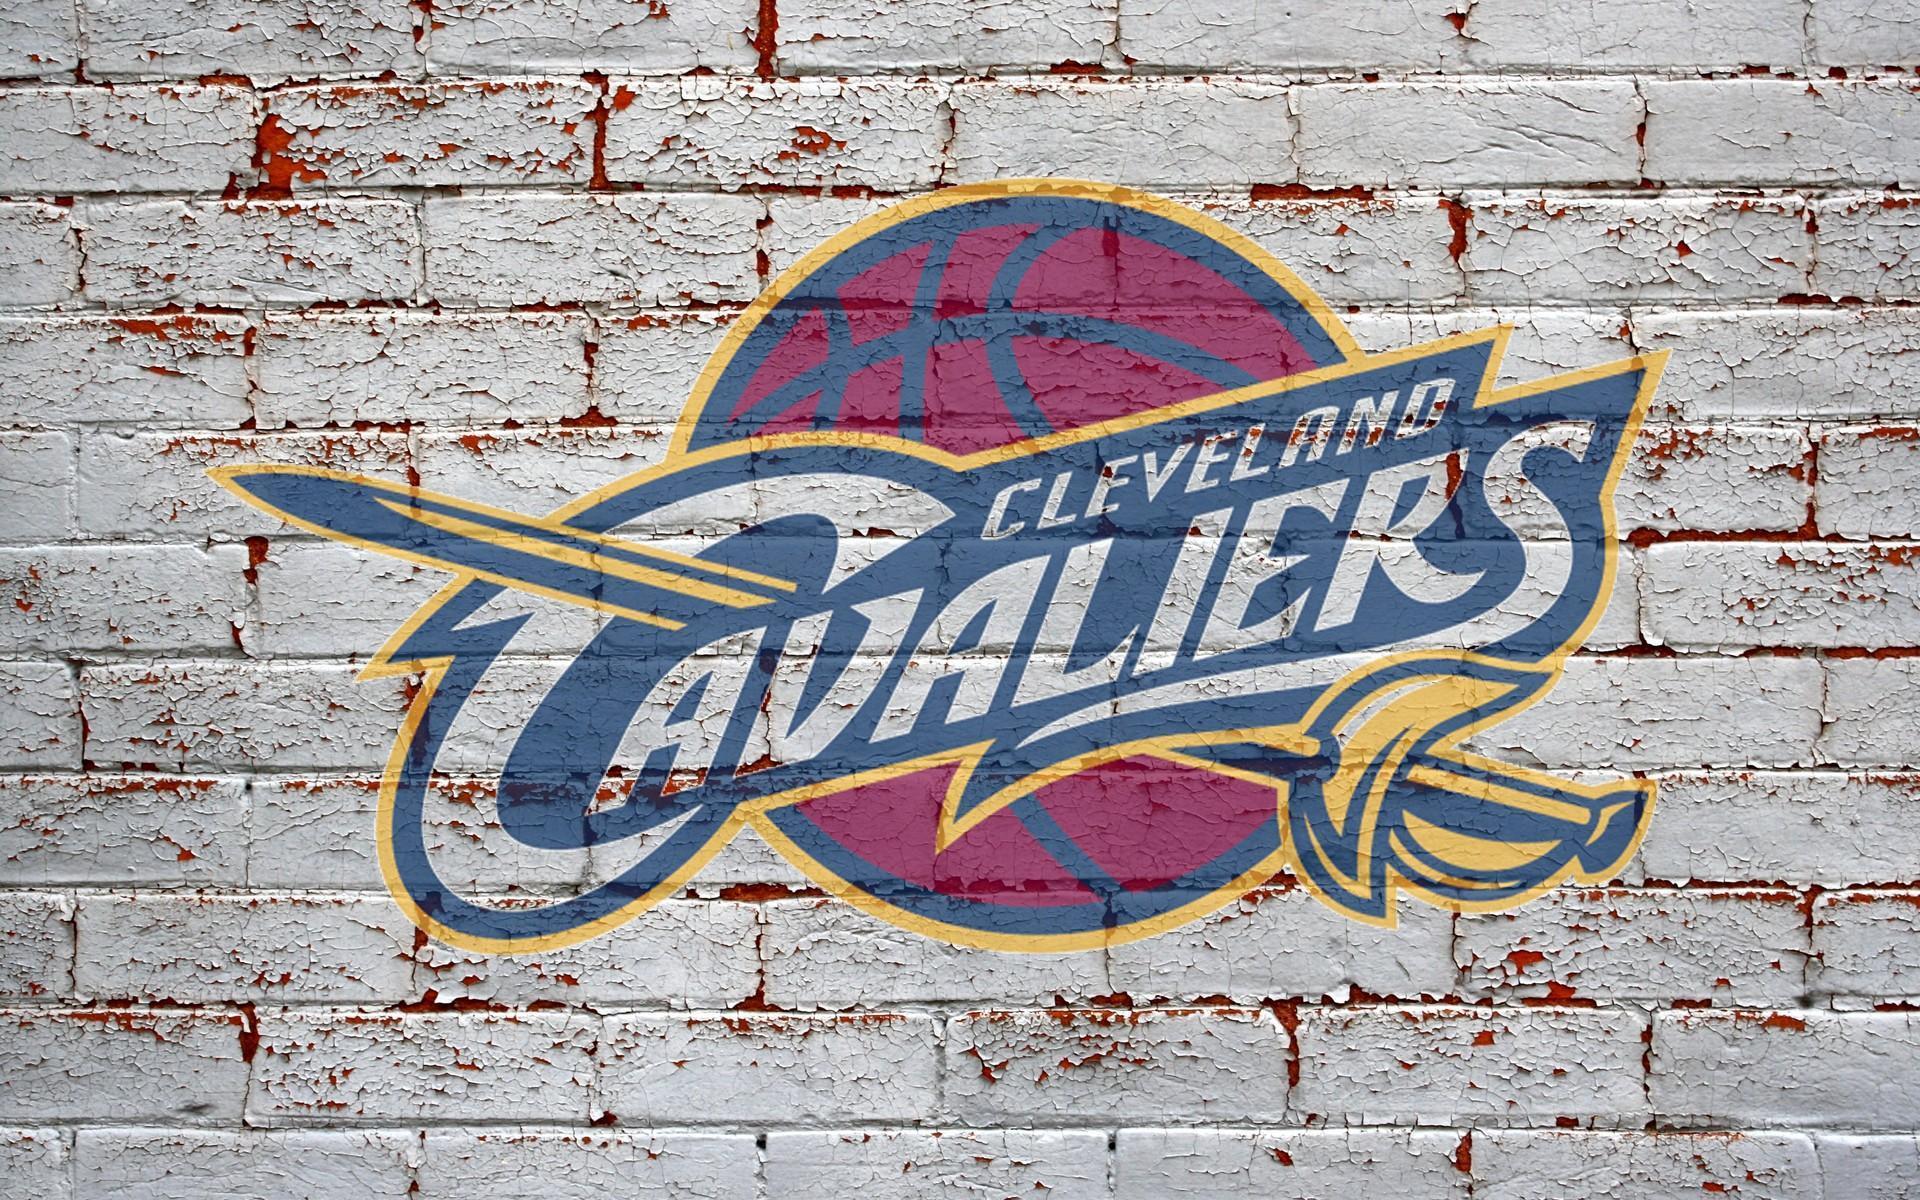 CLEVELAND CAVALIERS Nba Basketball team logo wallpaper Wallpapers ...